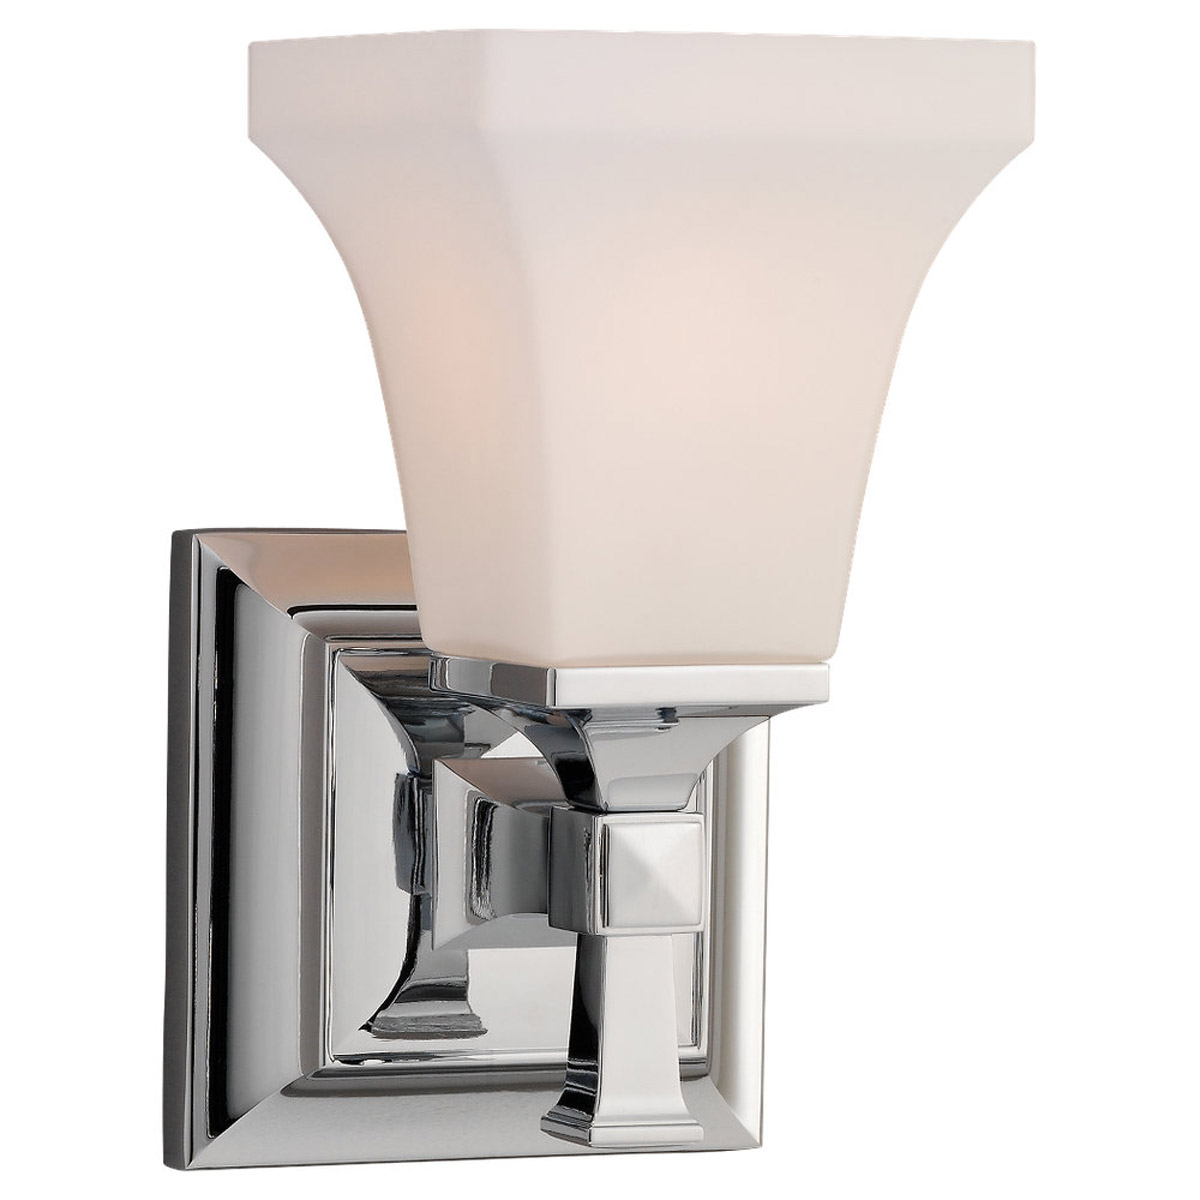 Sea Gull Lighting Melody 1 Light Bath Vanity in Chrome 44705-05